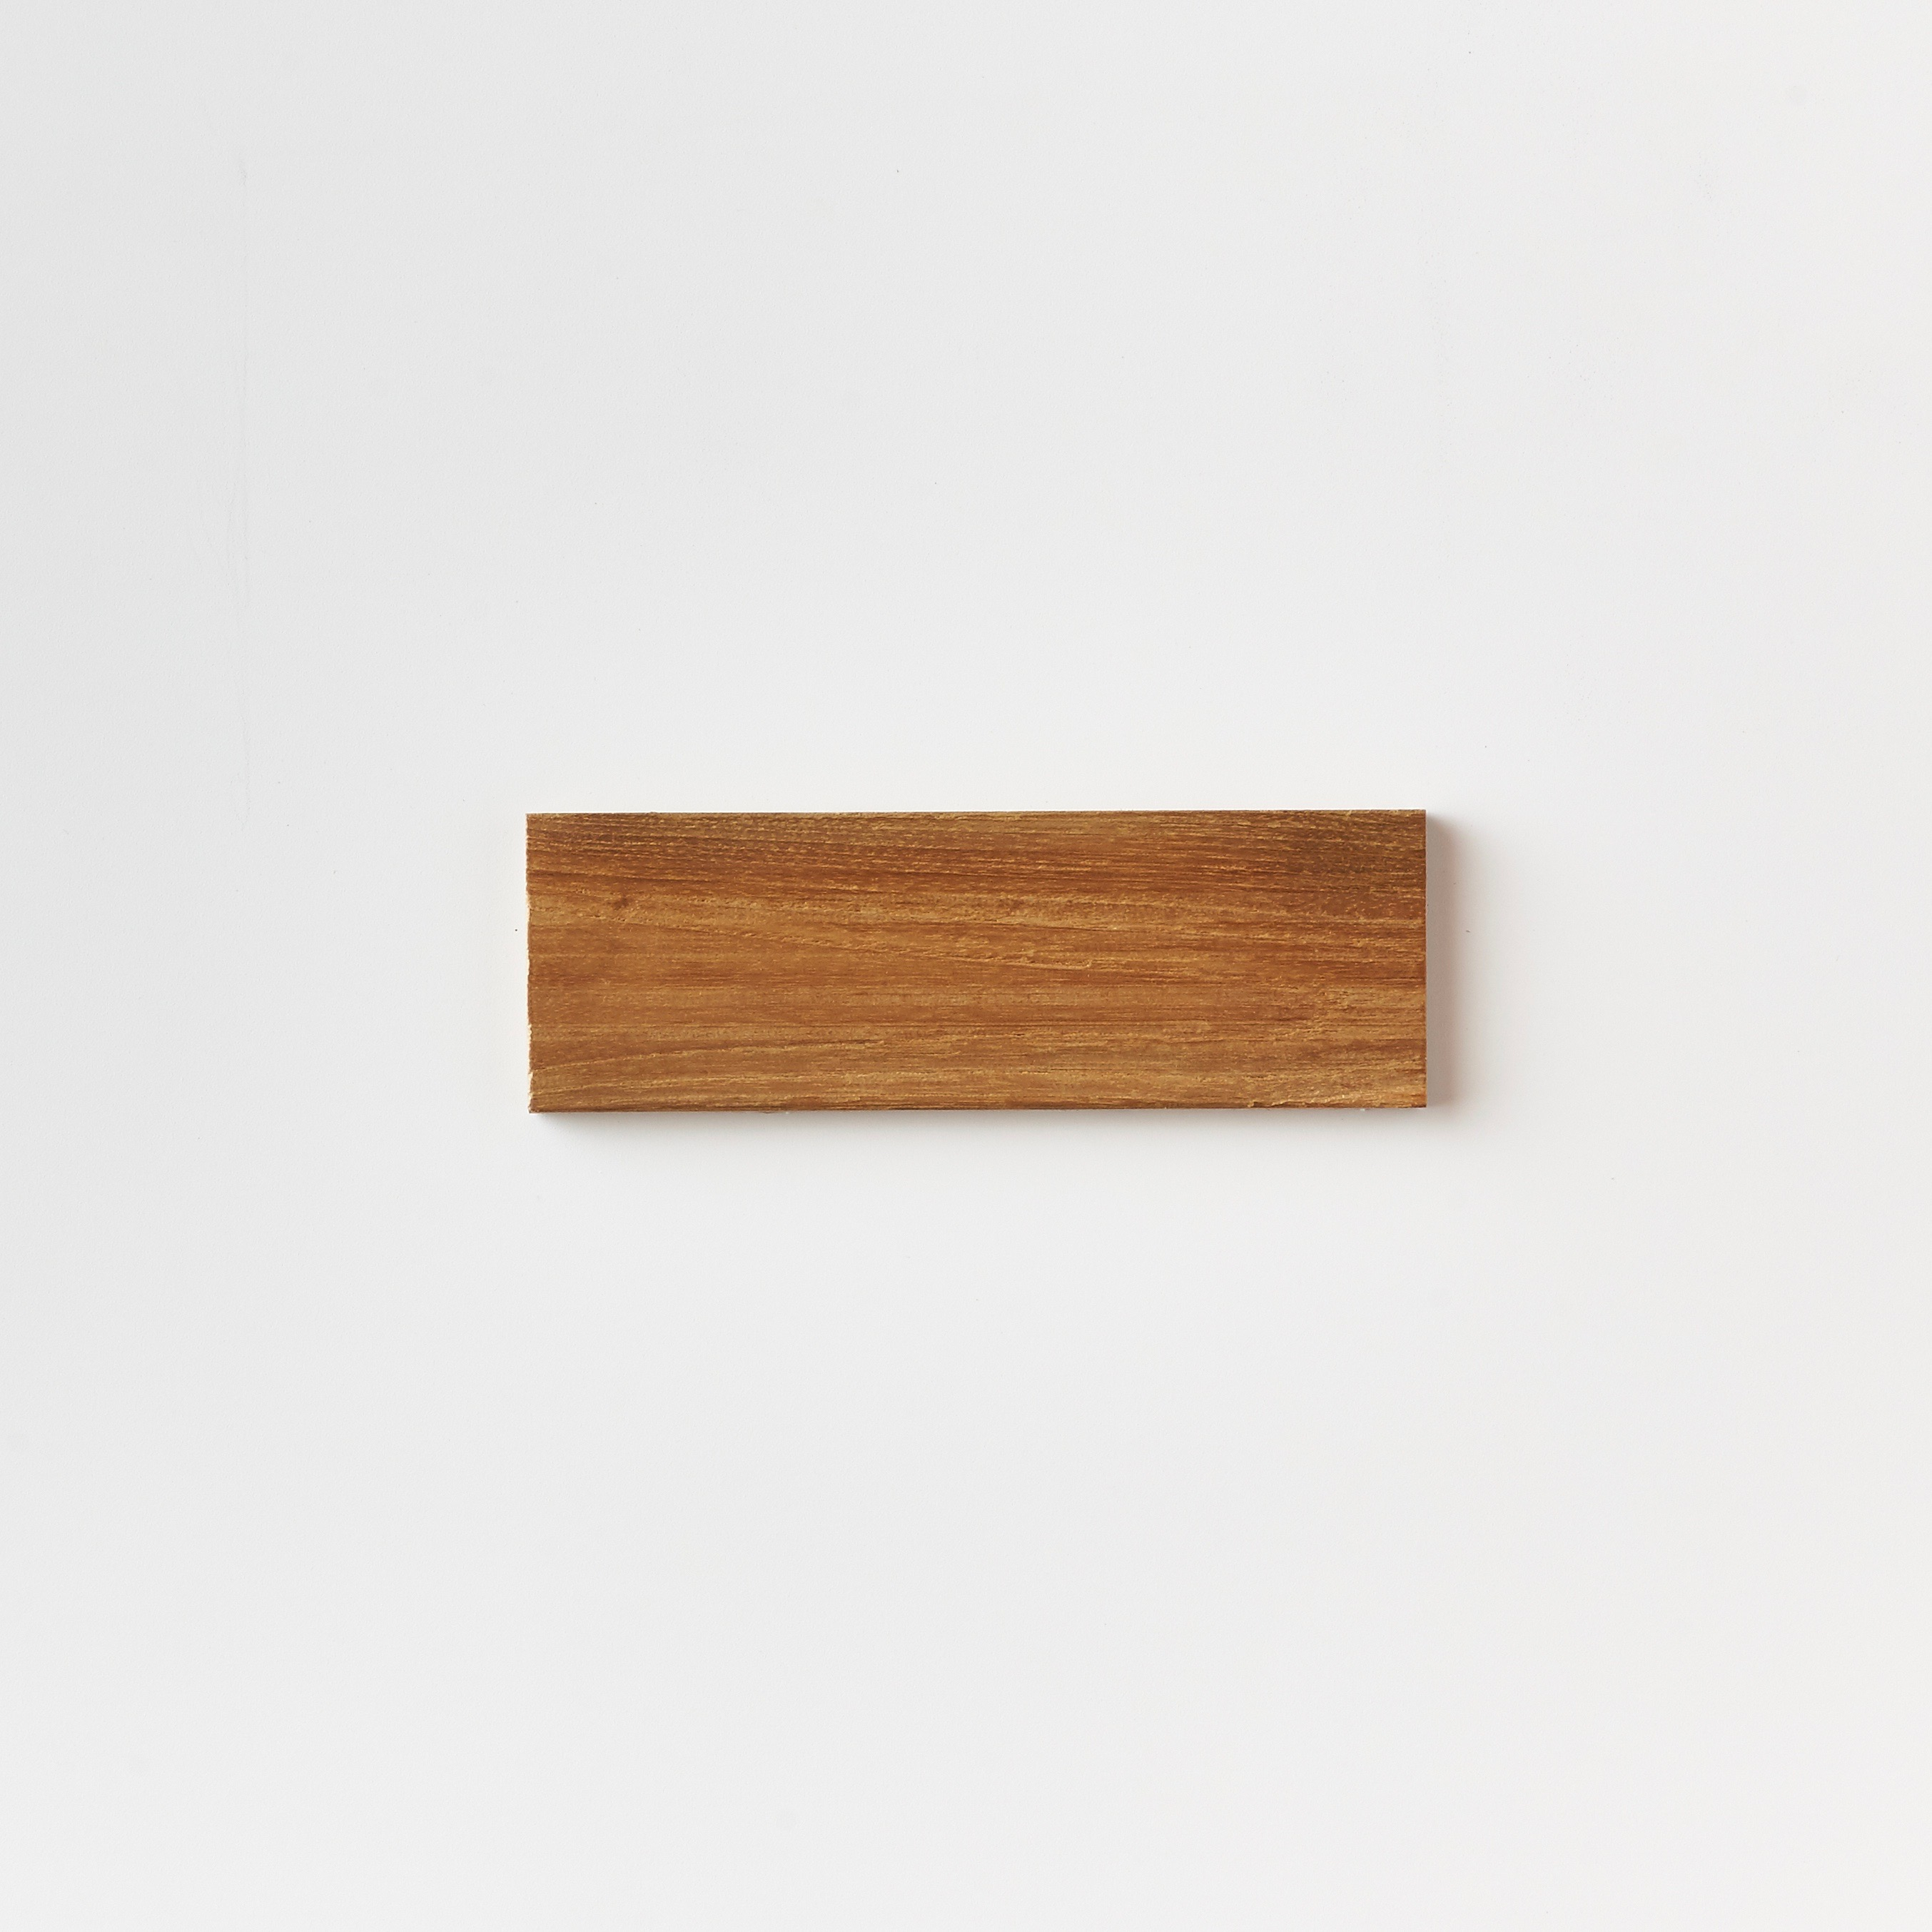 natural single tile 10 - Teak Tile - Subway